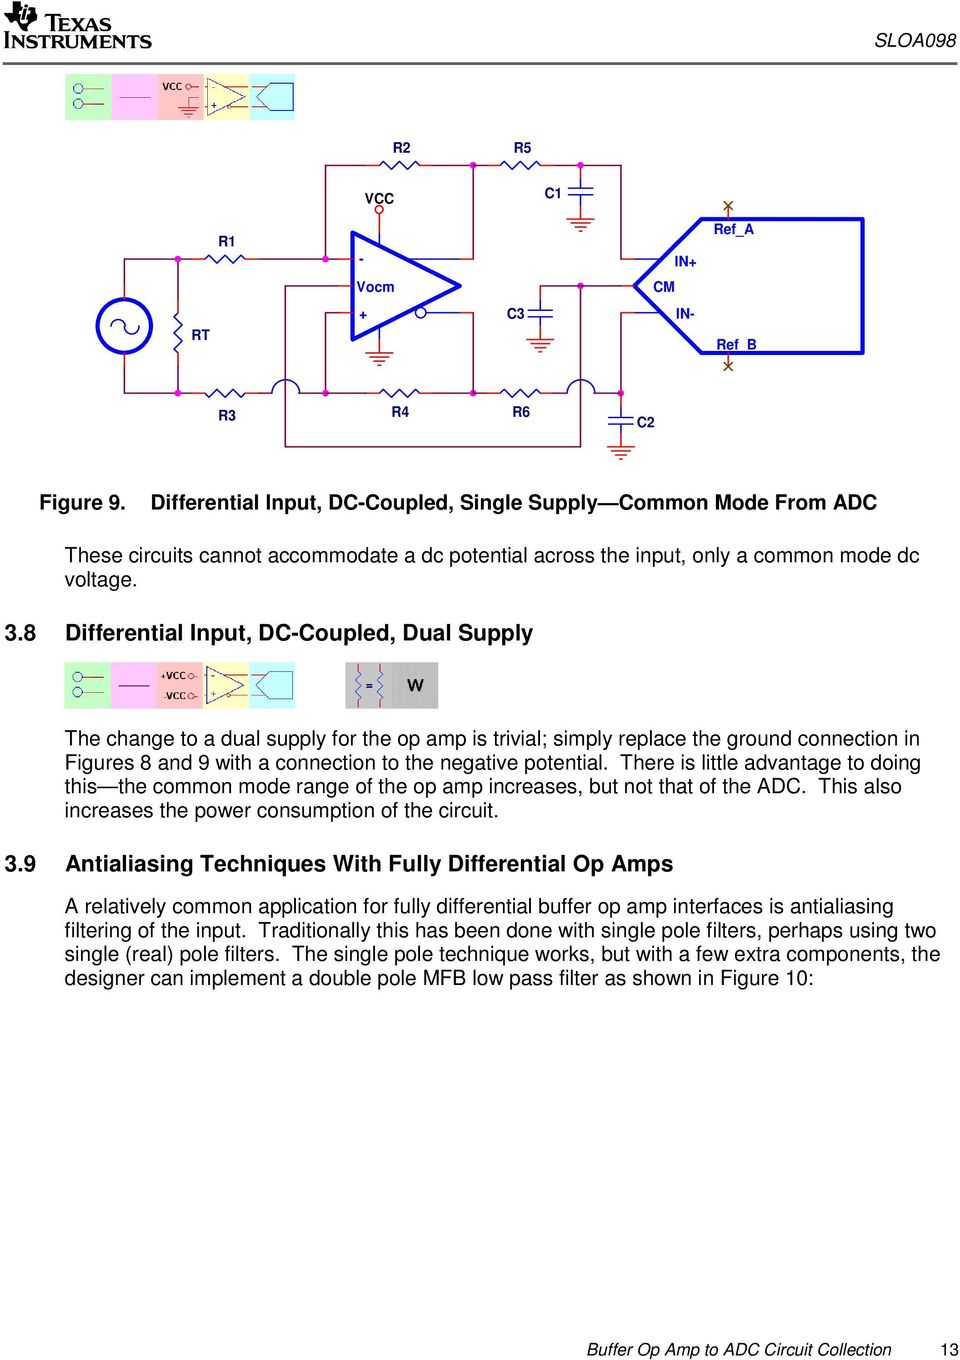 There is little advantage to doing this the common mode range of the op amp increases, but not that of the ADC. This also increases the power consumption of the circuit. 3.